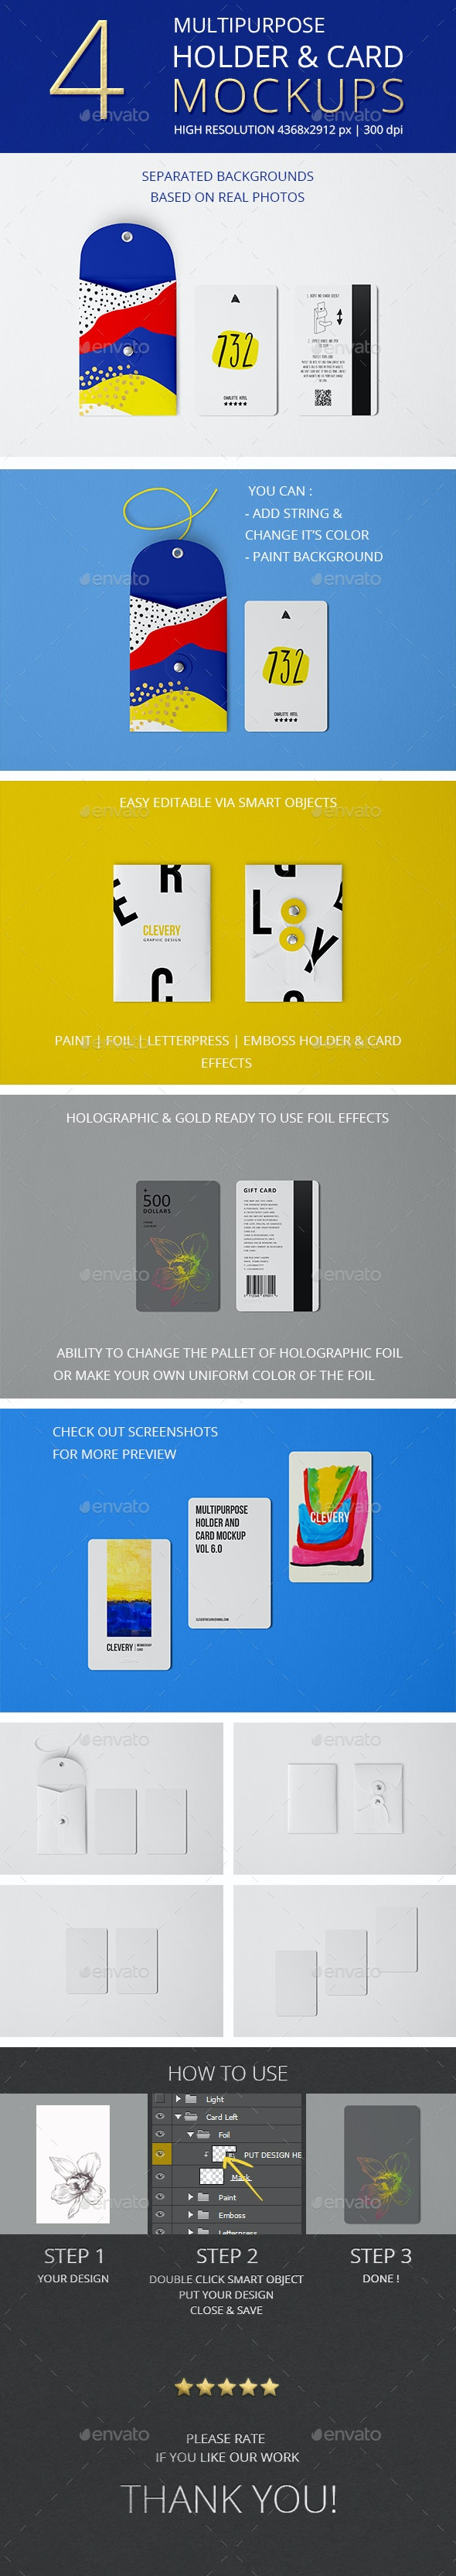 Multipurpose Holder & Card Mockup Vol 6.0 - Miscellaneous Print